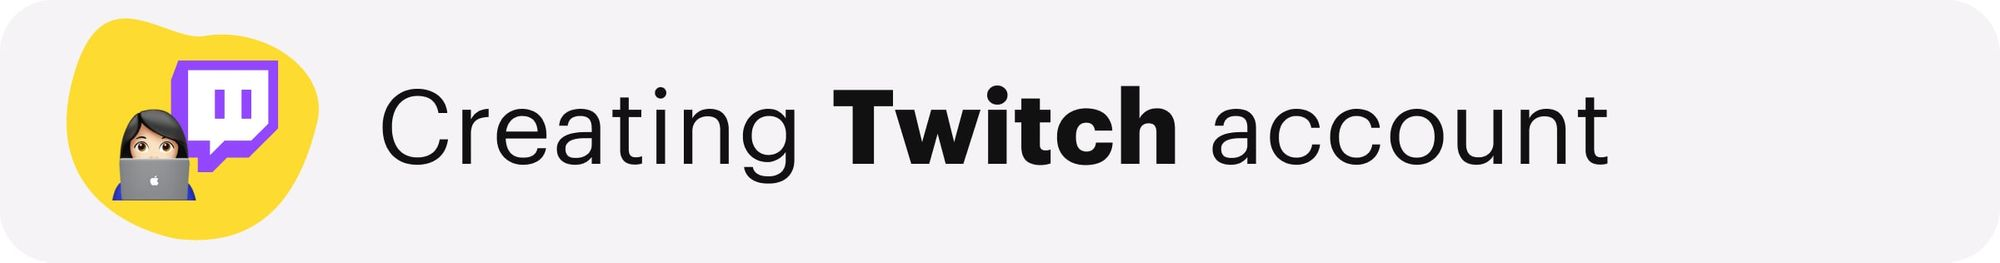 Creating Twitch account